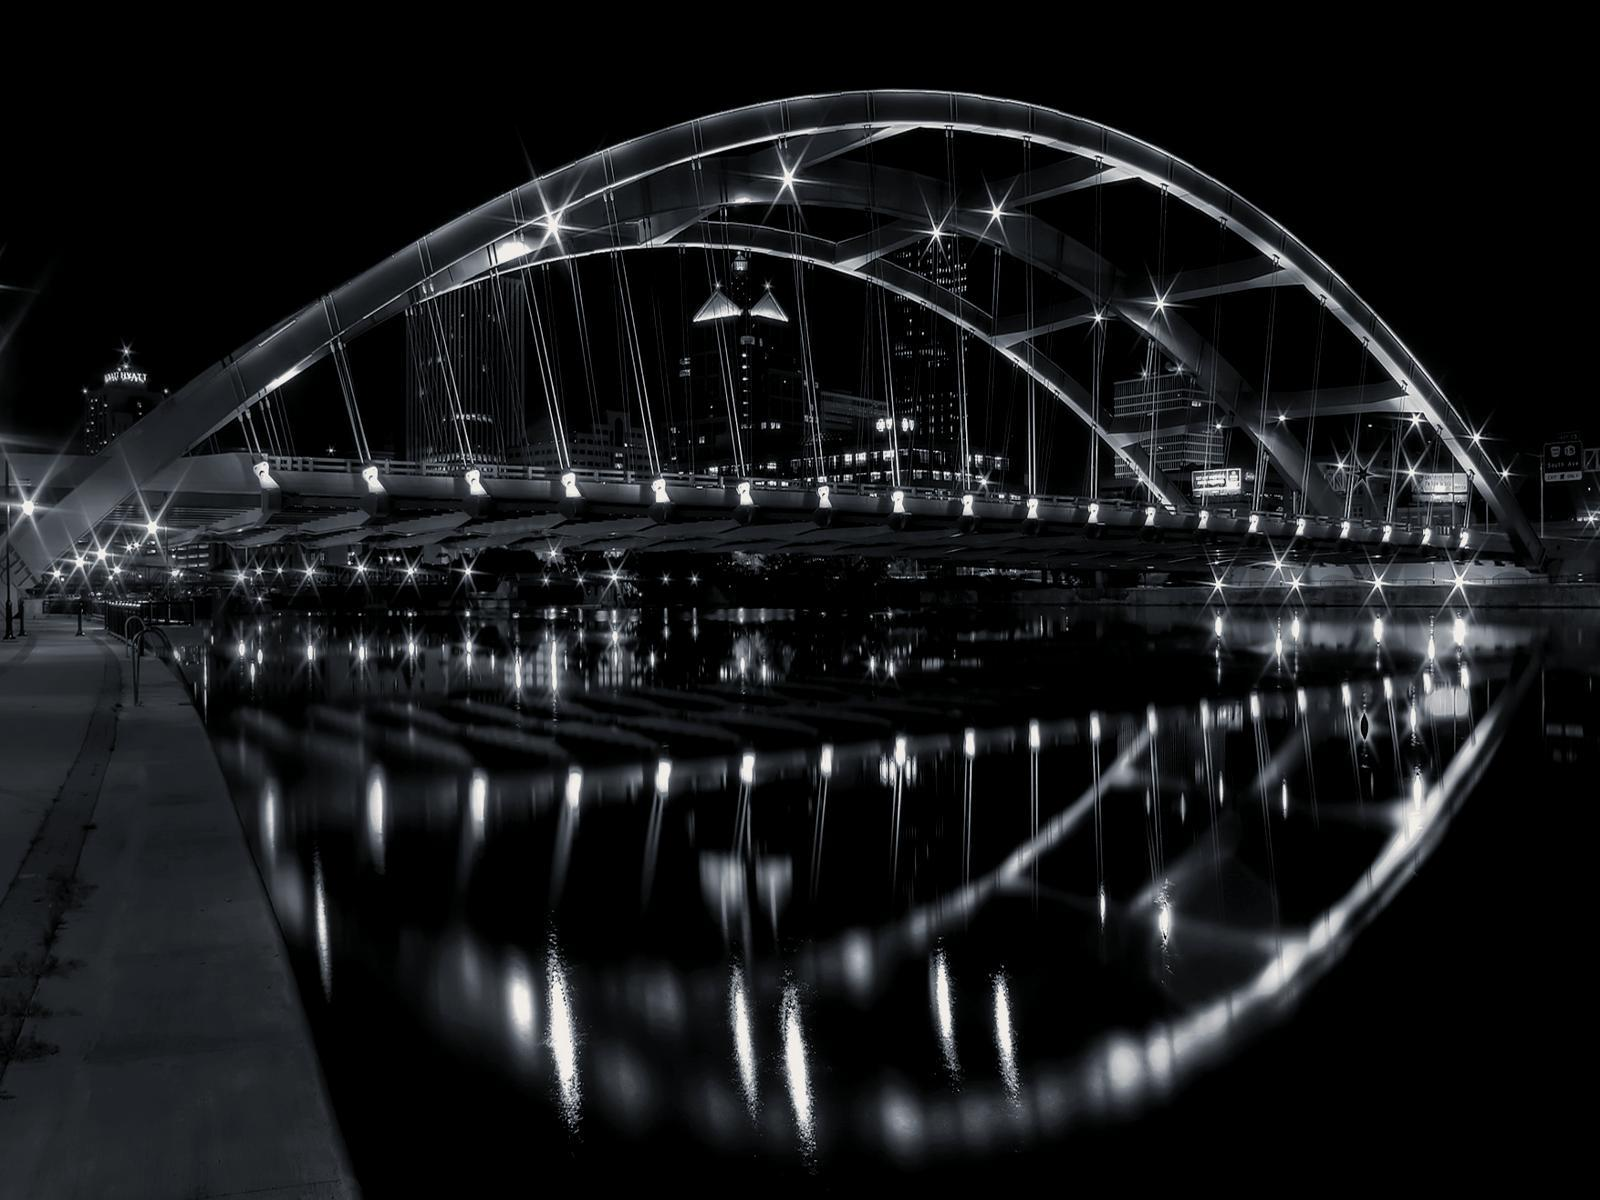 Black and White City Bridge wallpapers II